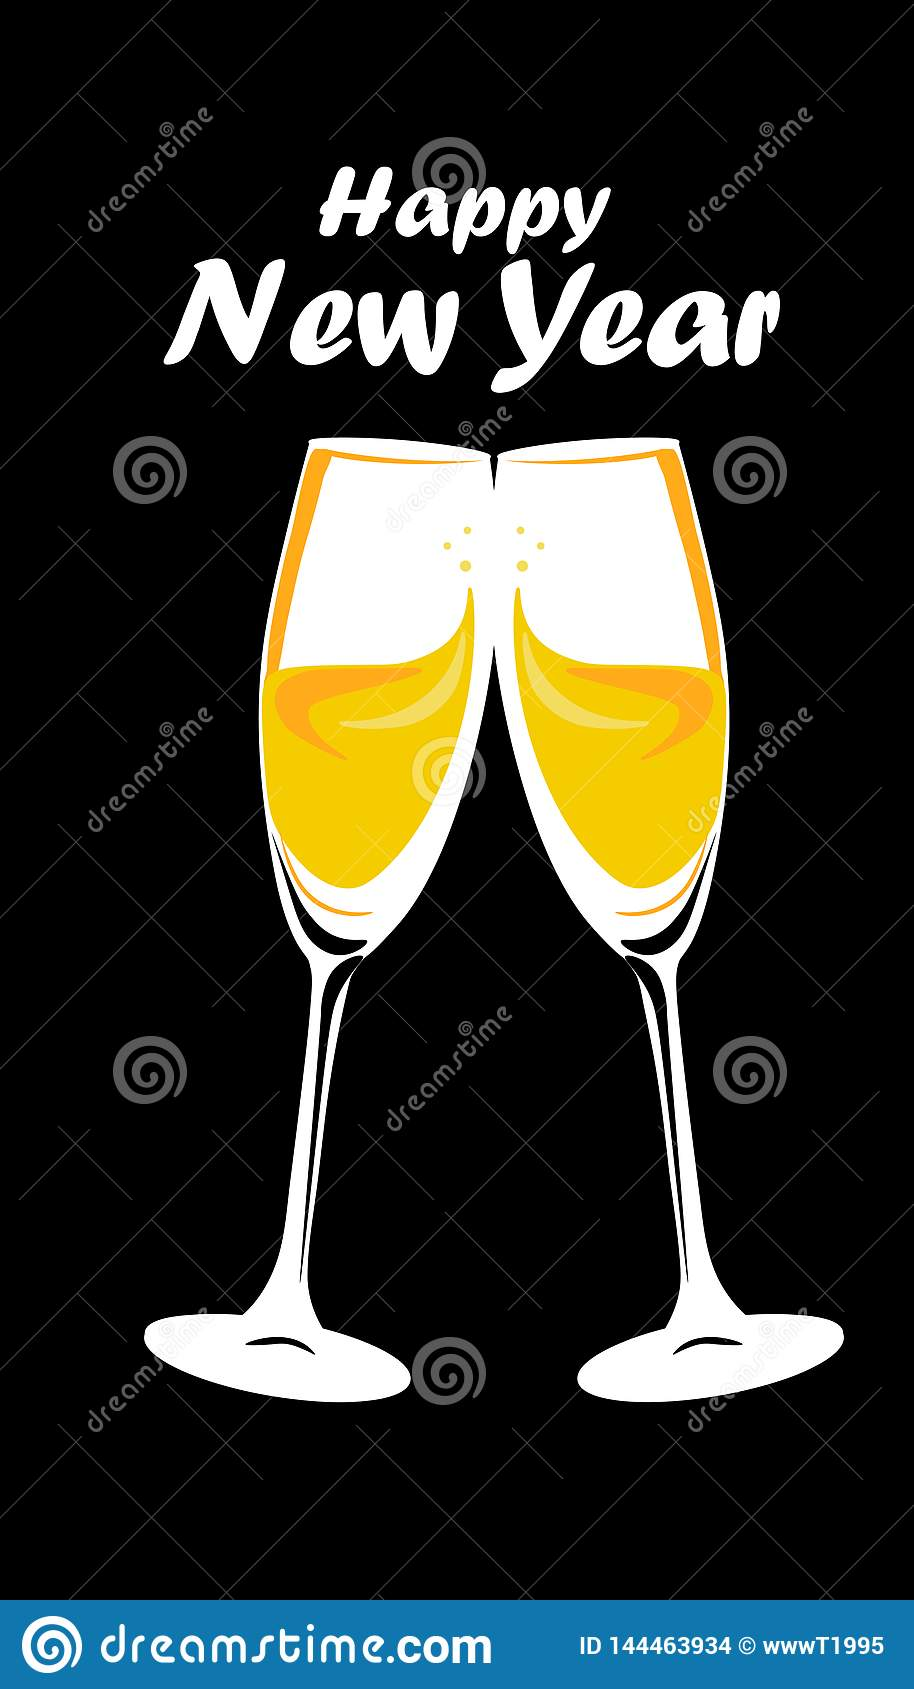 Web. Sparkling gold silver champagne glasses. Vector illustration. Happy New Year Lettering concept. Place for your text message